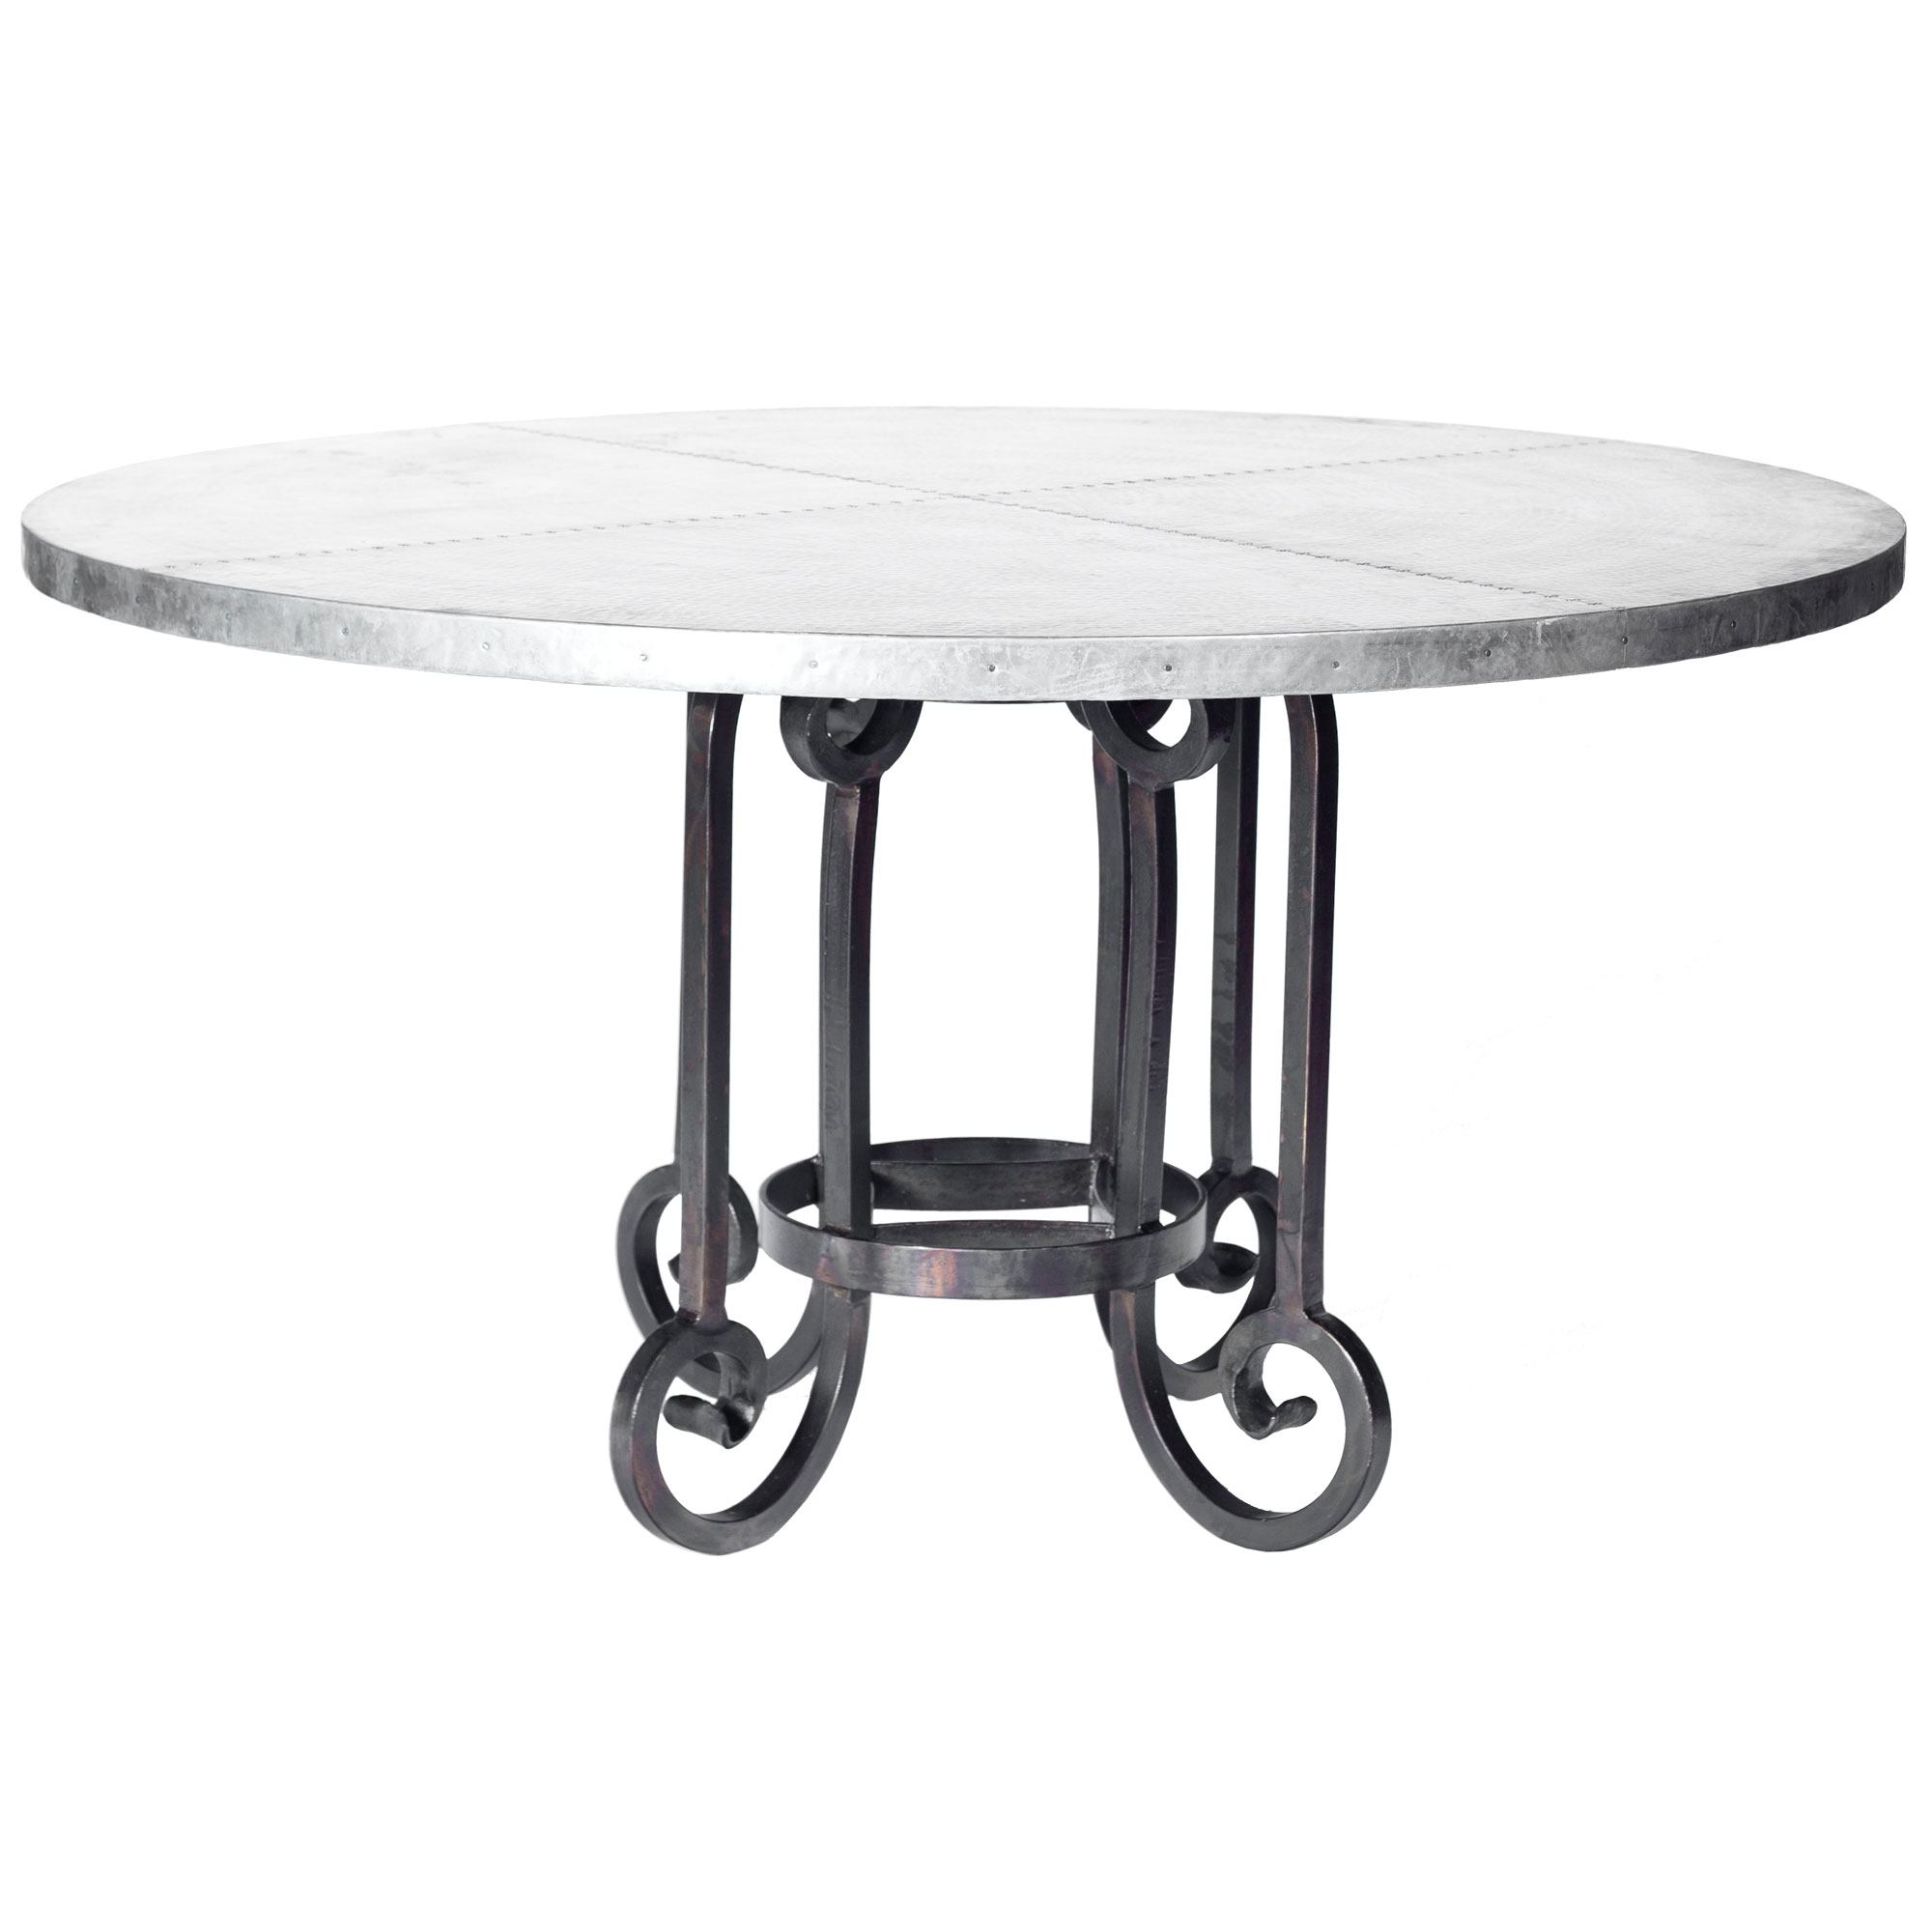 Round Dining Table With Wrought Iron Base And 60 Larger Photo